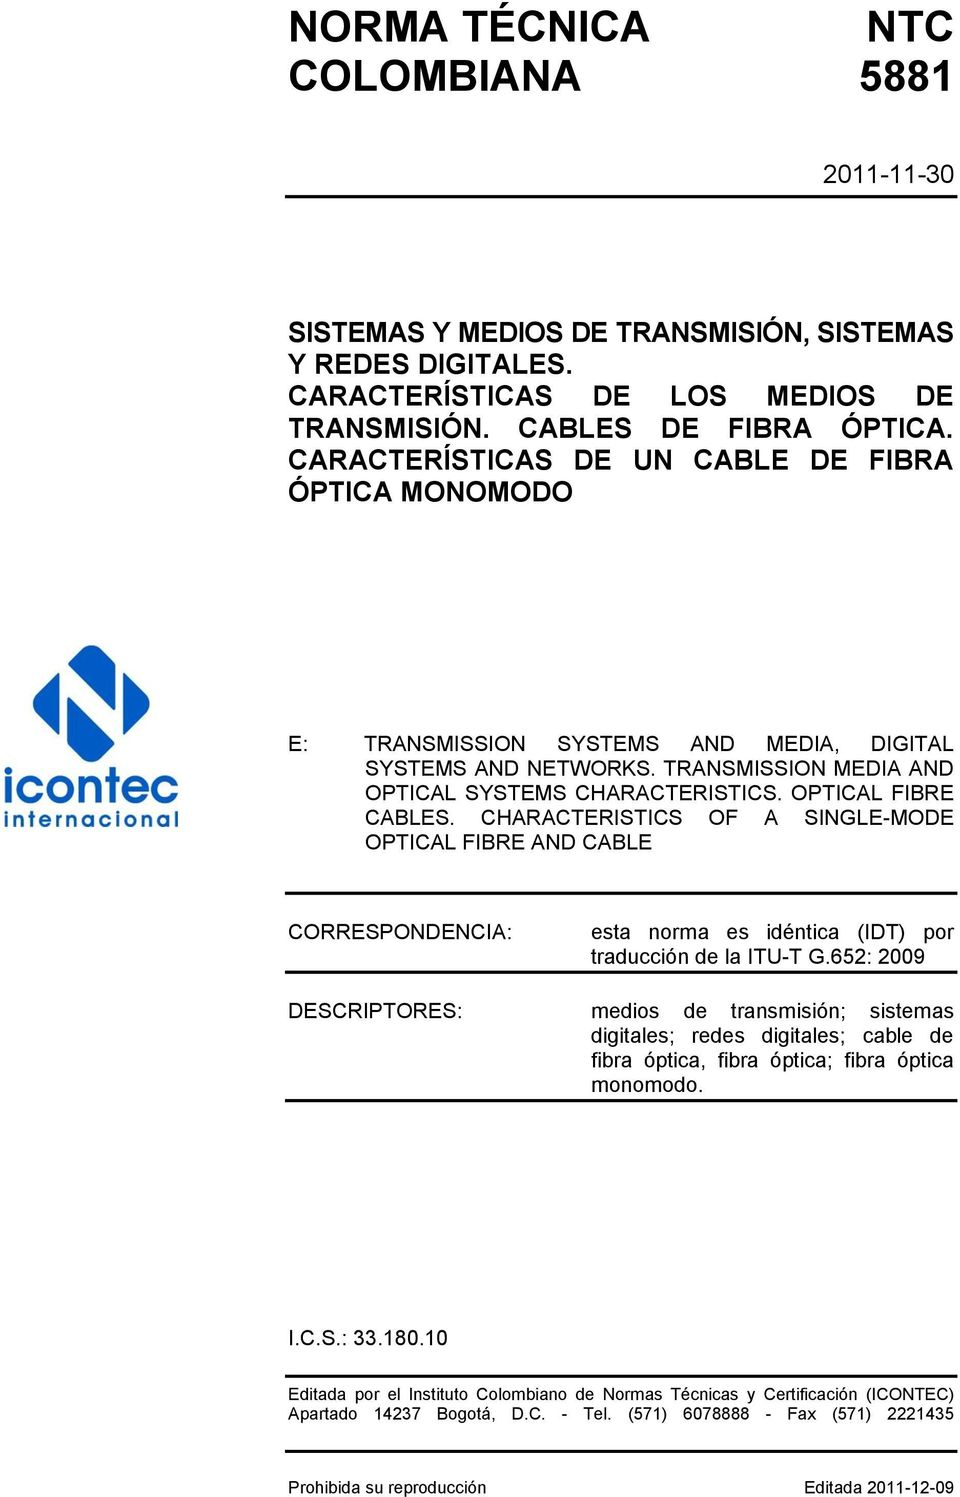 CHARACTERISTICS OF A SINGLE-MODE OPTICAL FIBRE AND CABLE CORRESPONDENCIA: esta norma es idéntica (IDT) por traducción de la ITU-T G.